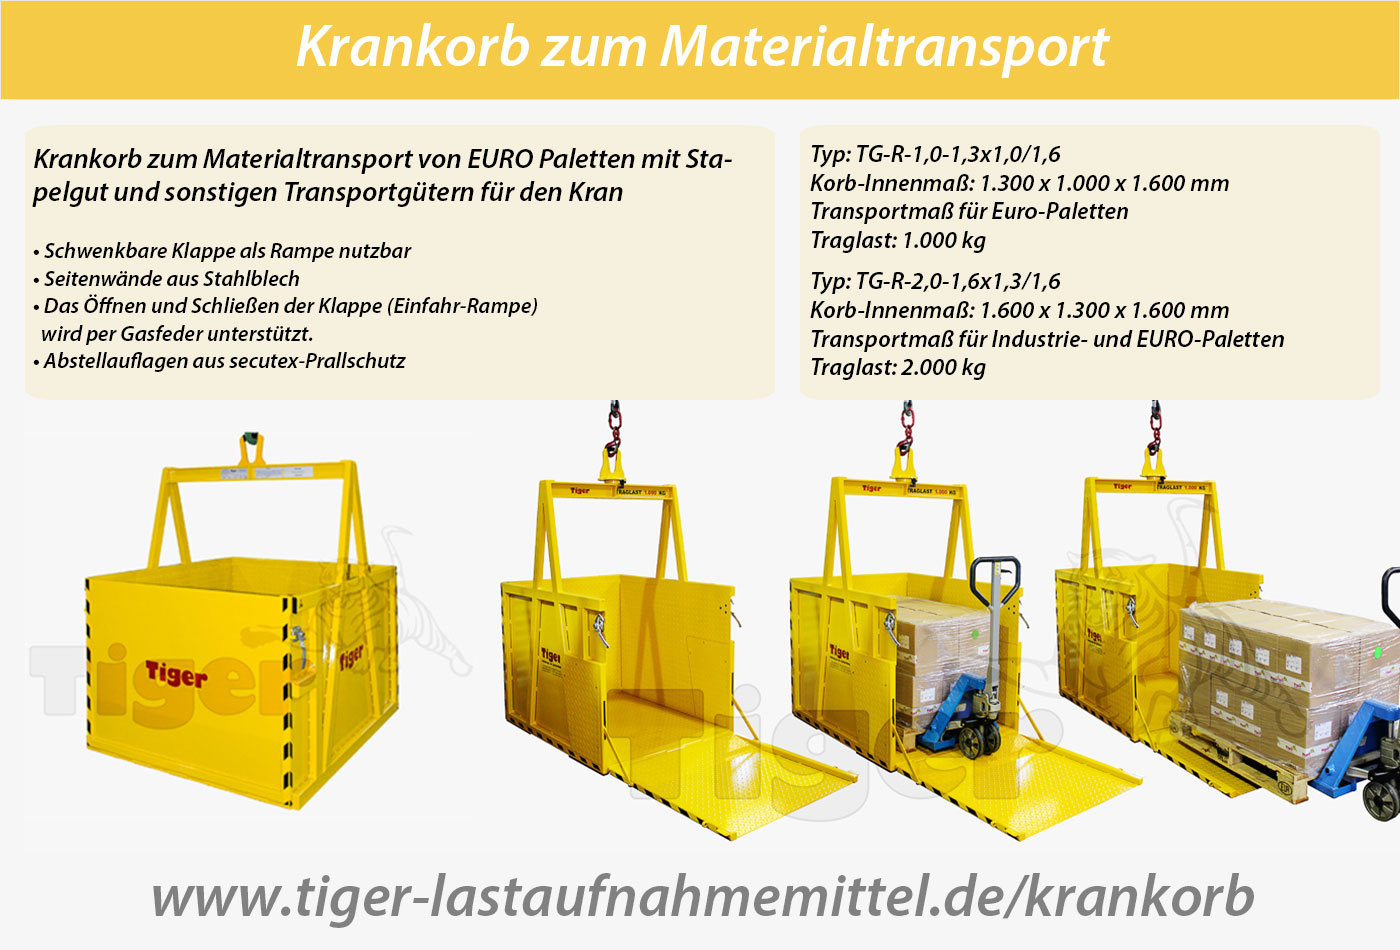 TIGER Krankorb Serie TG-RGT - Materialtransport Kranbetrieb